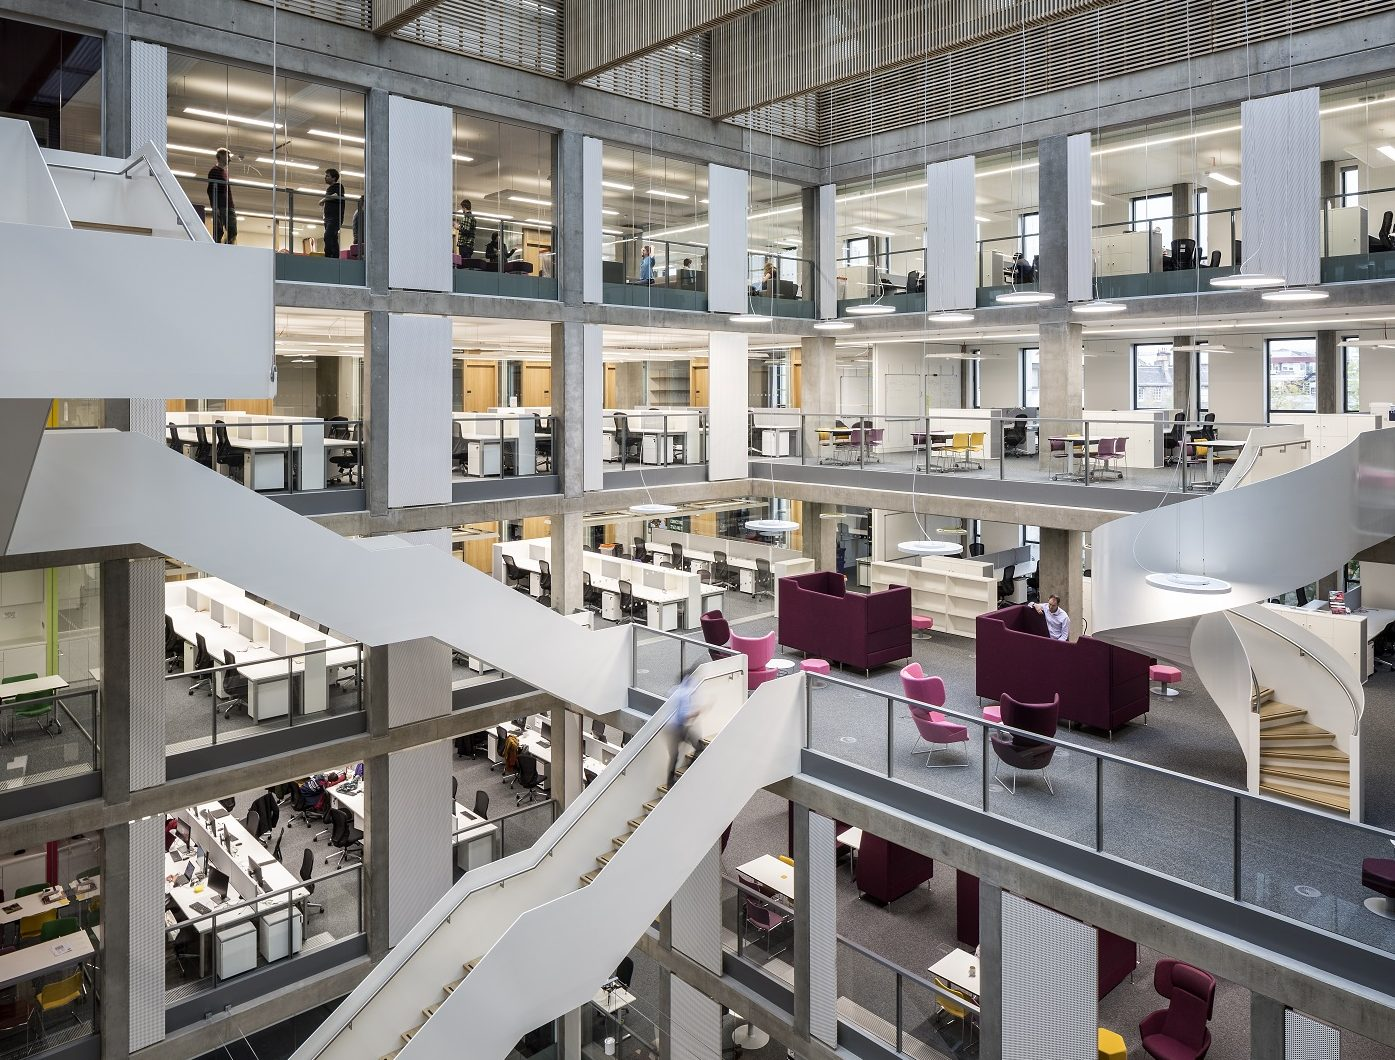 Indeglas successfully completes interior glass installation at University of Edinburgh's The Bayes Centre at Potterow brings recent contract awards to over £840k